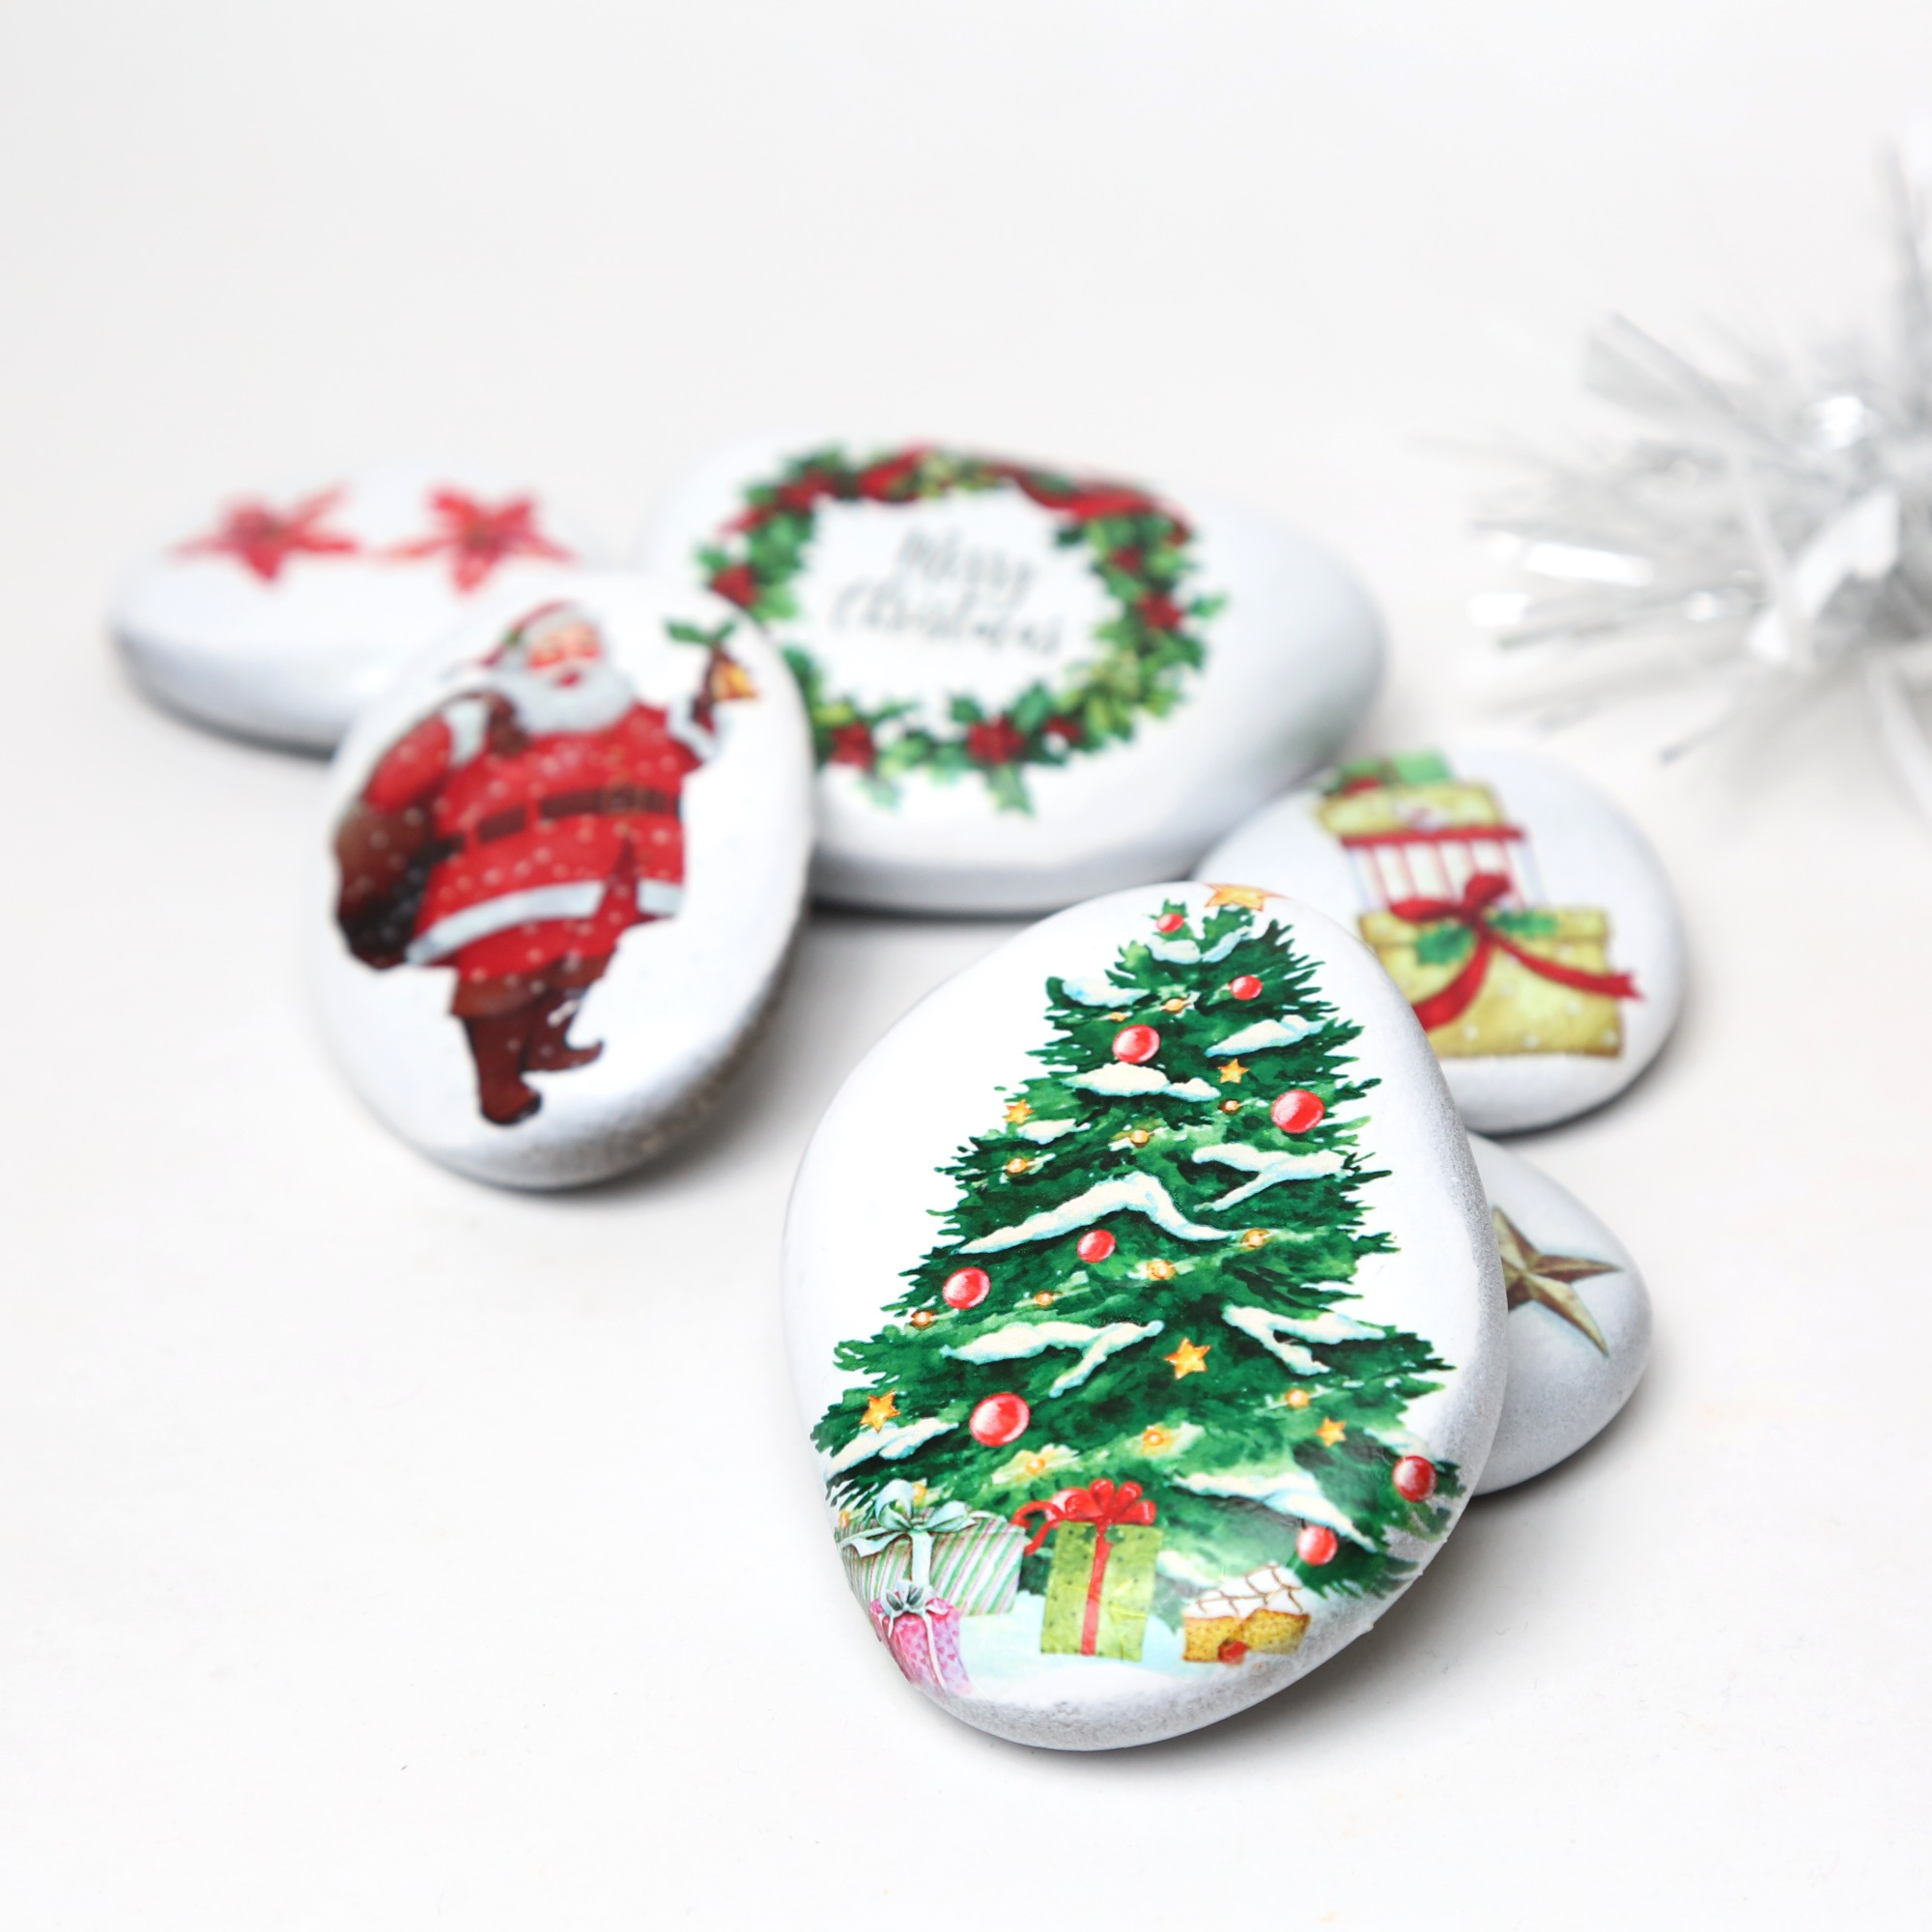 Merry Christmas - Stozo pebbles Decorated pebbles for christmas decorations